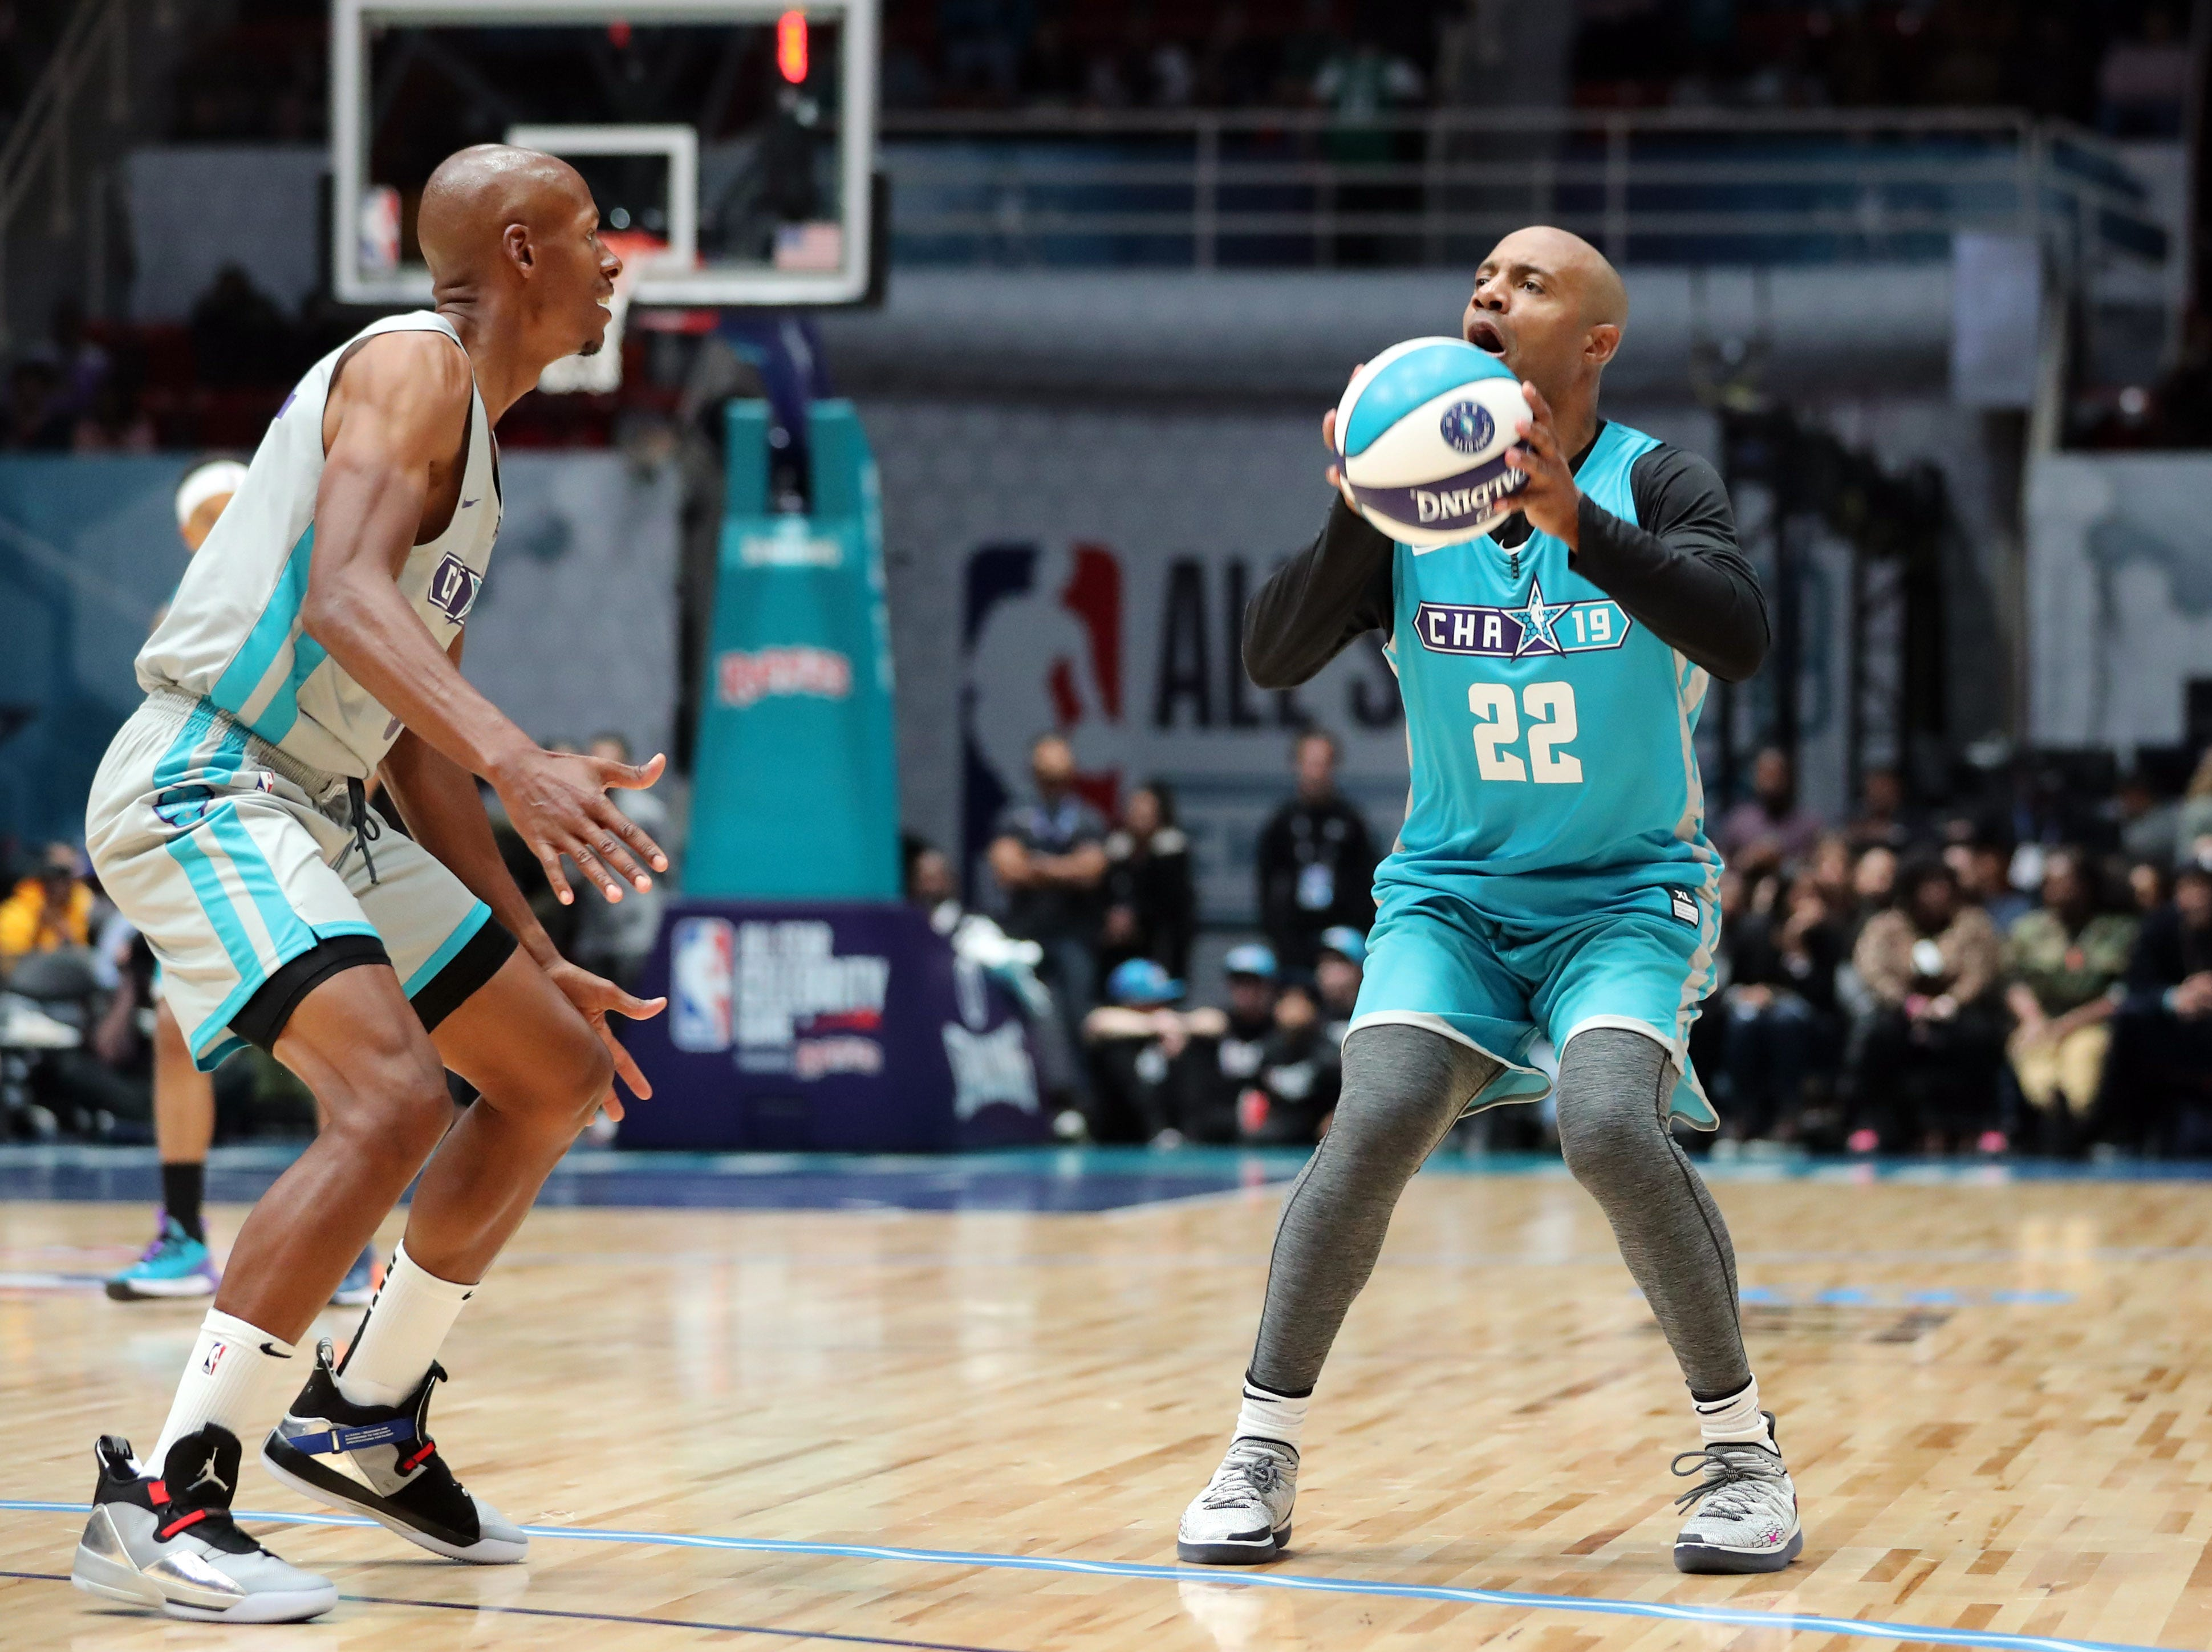 Jay Williams takes a shot while defended by Ray Allen during the third quarter of the Celebrity Game.